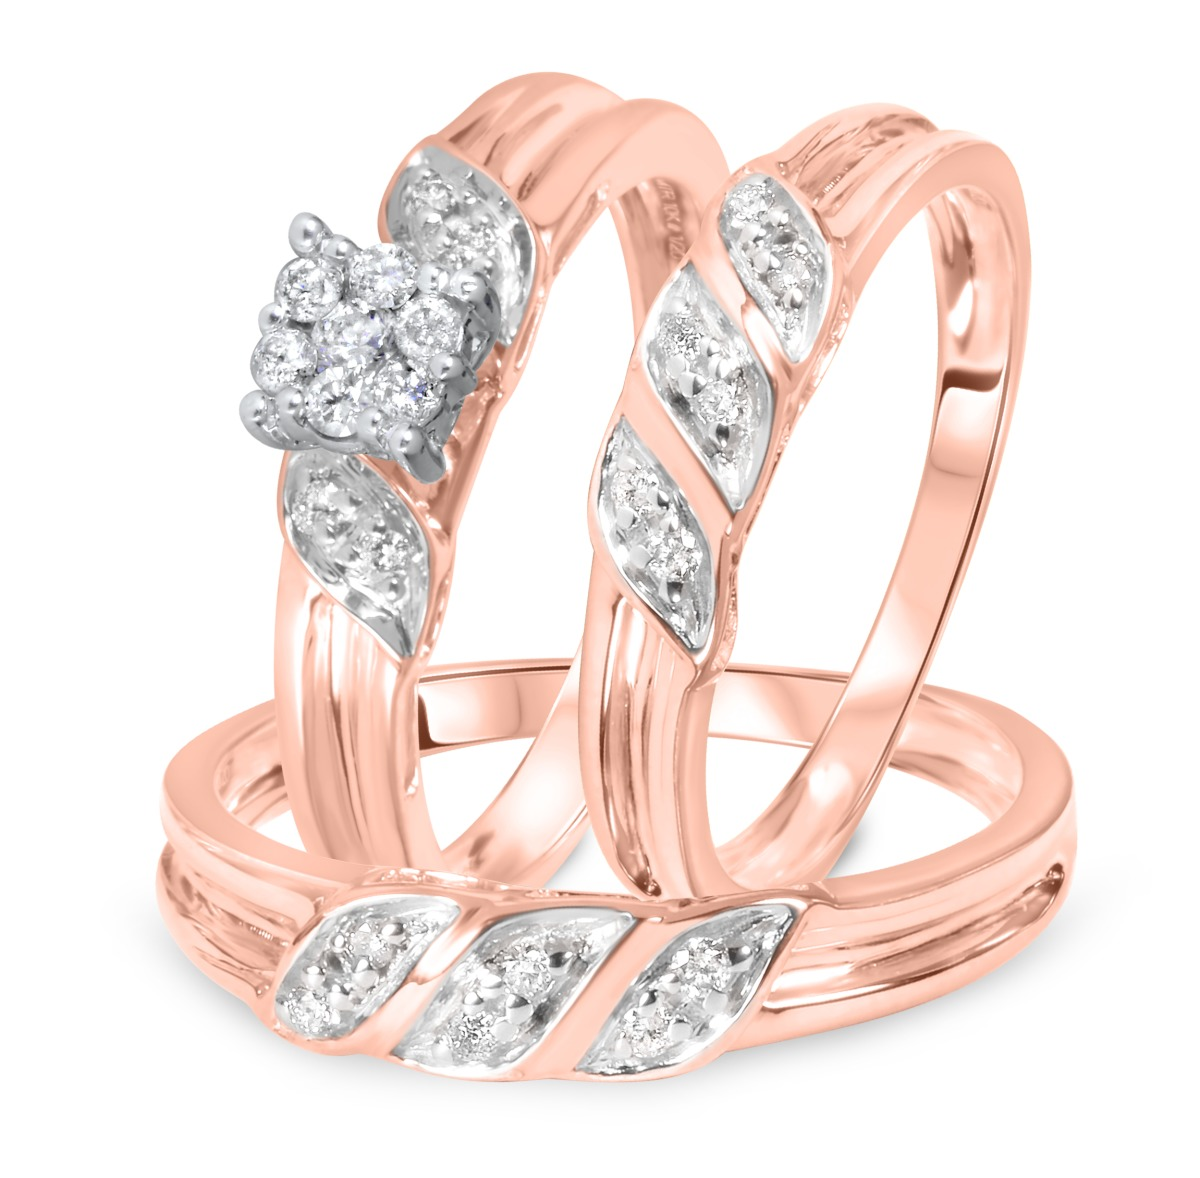 1/4 Carat Diamond Trio Wedding Ring Set 10K Rose Gold